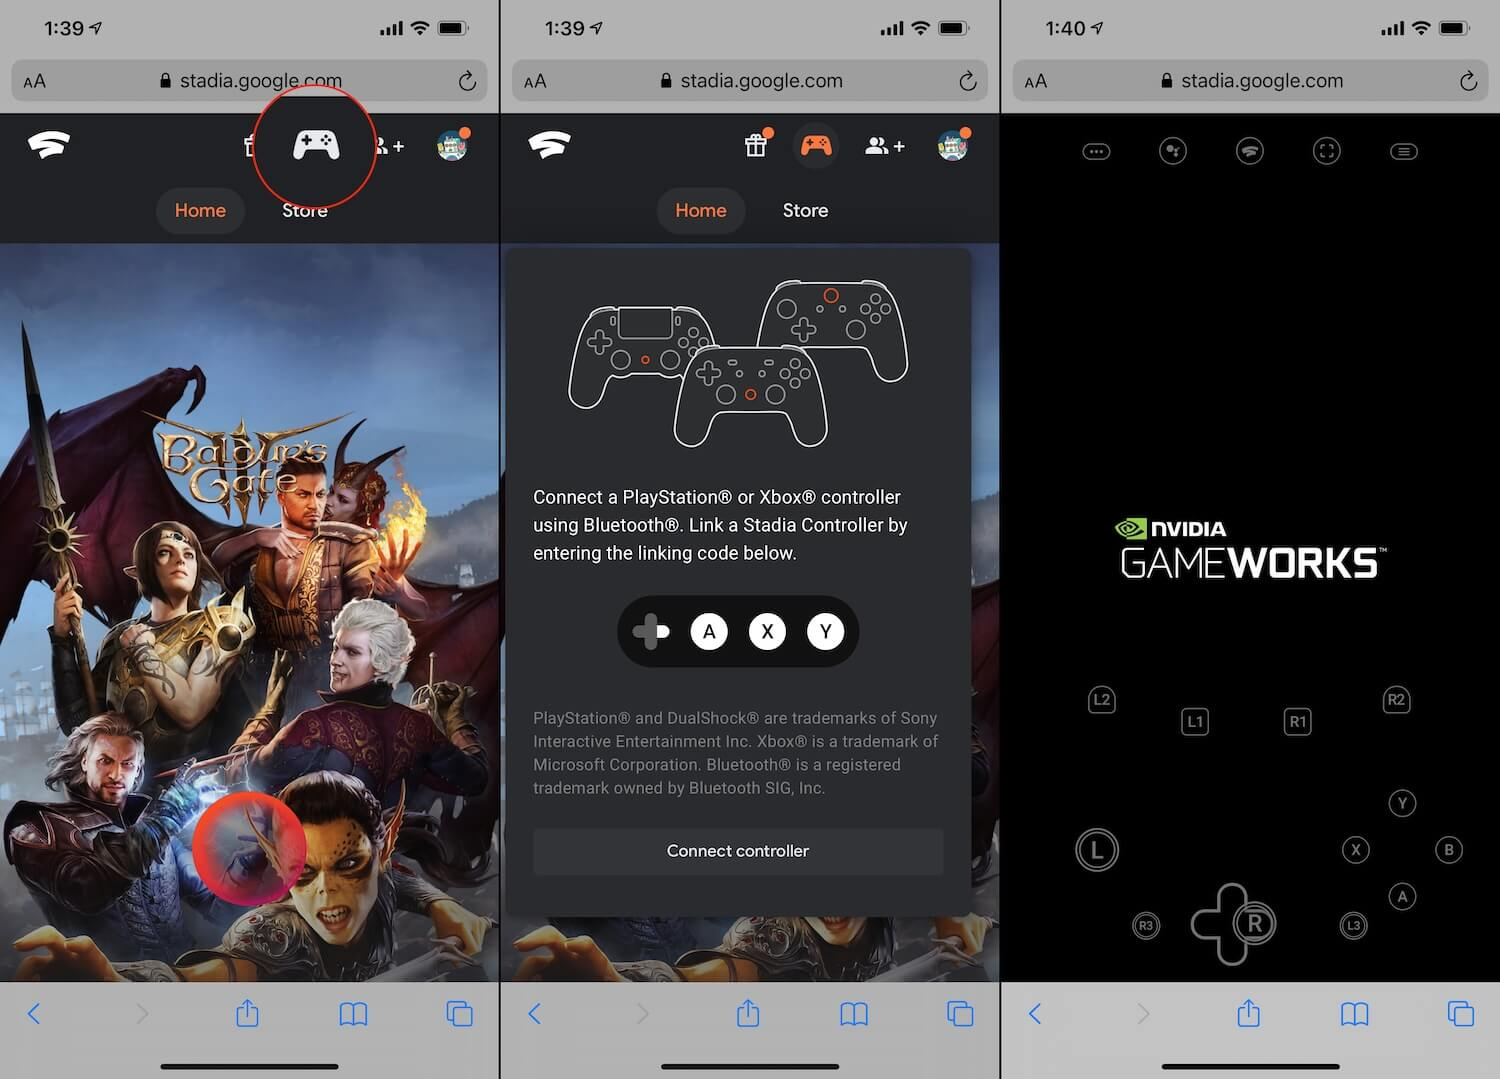 How to Google Stadia on iPhone 2